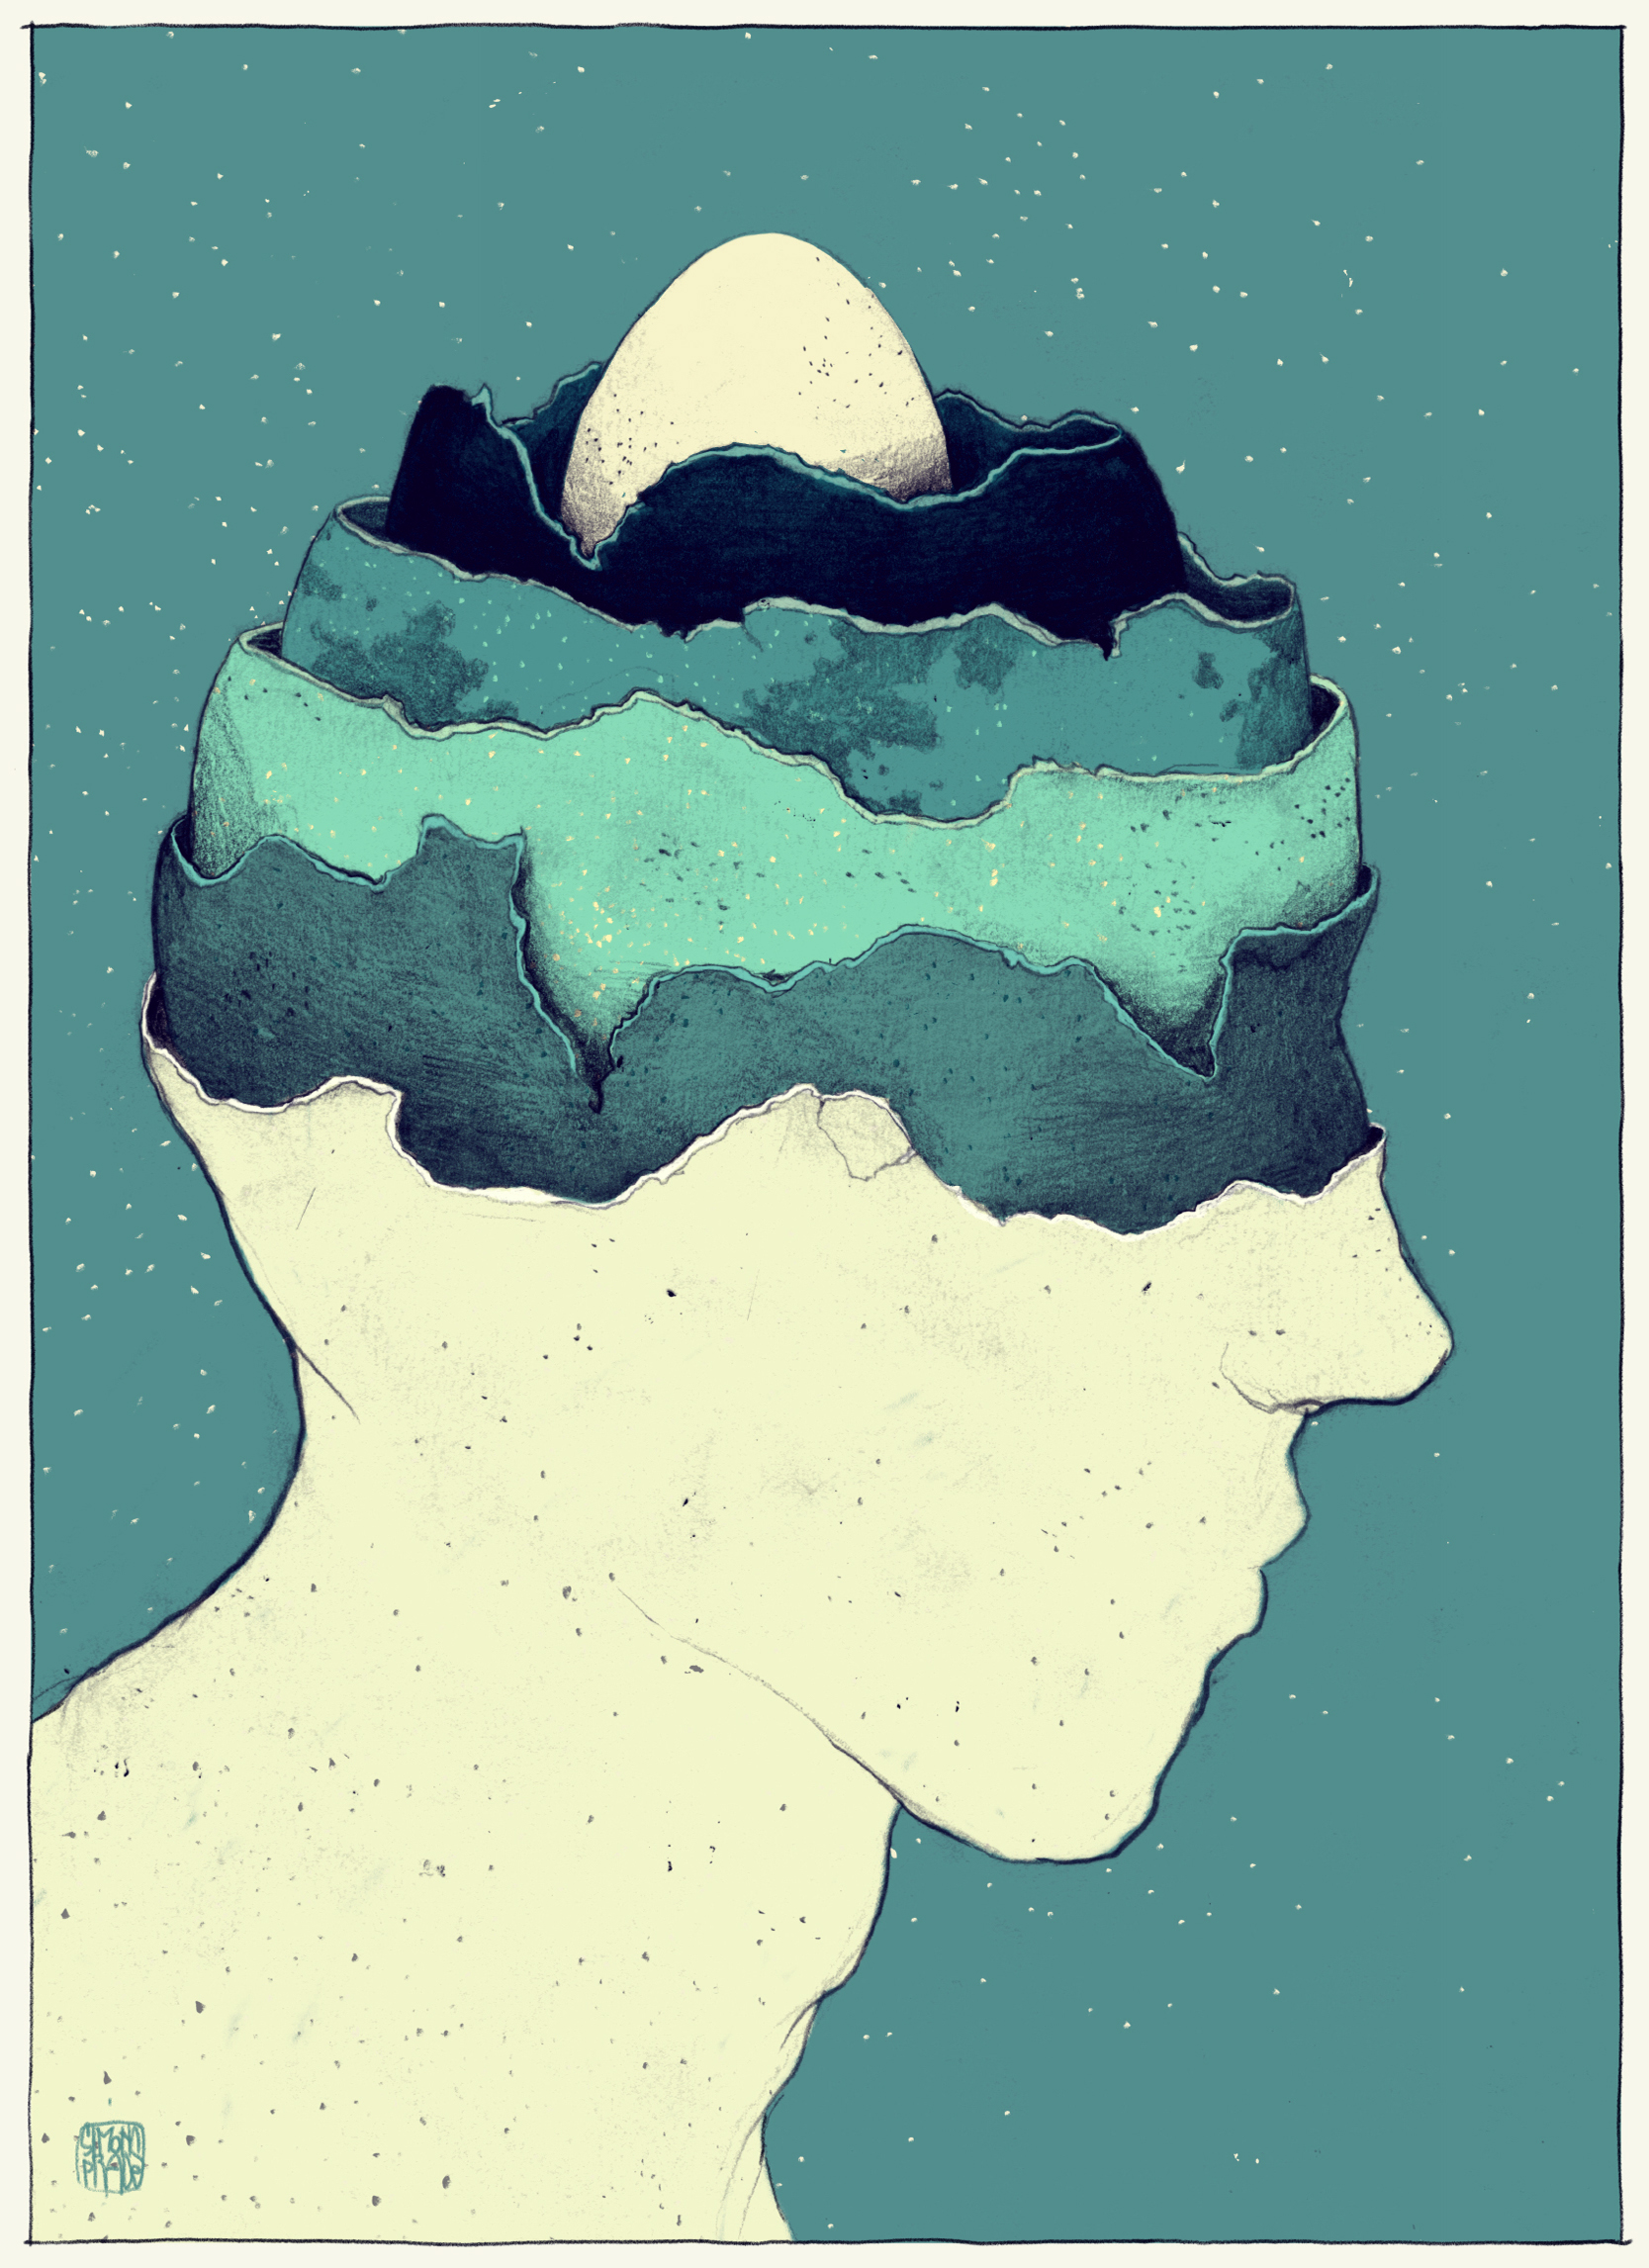 New Surreal Illustrations From the Mind of Simon Prades  Colossal